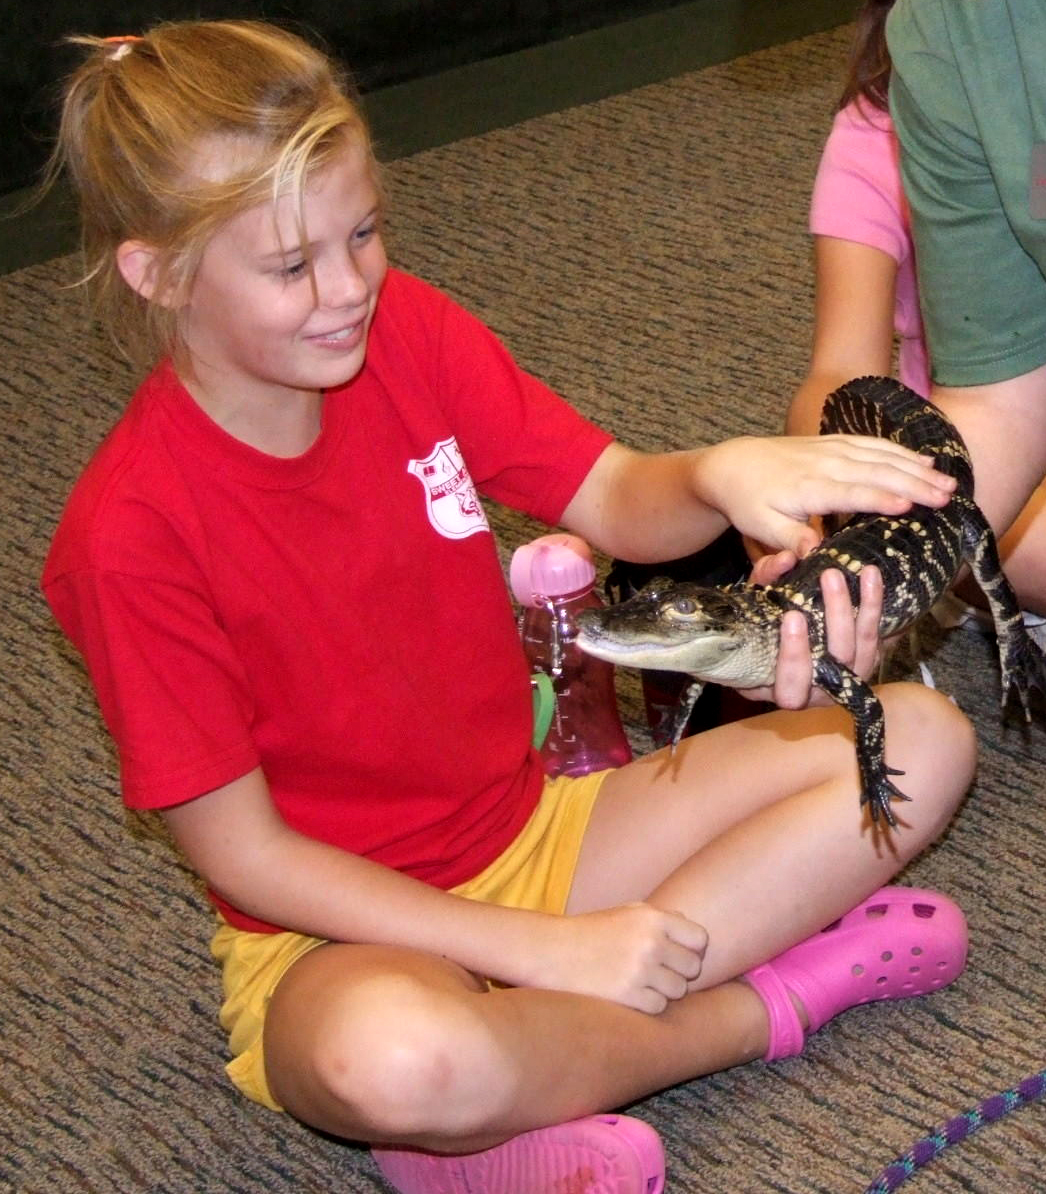 Feb. 19 will kick off the first 2011 Saturday at the Rock event. The day's topic will be Herpetology: the Study of Reptiles and Amphibians.